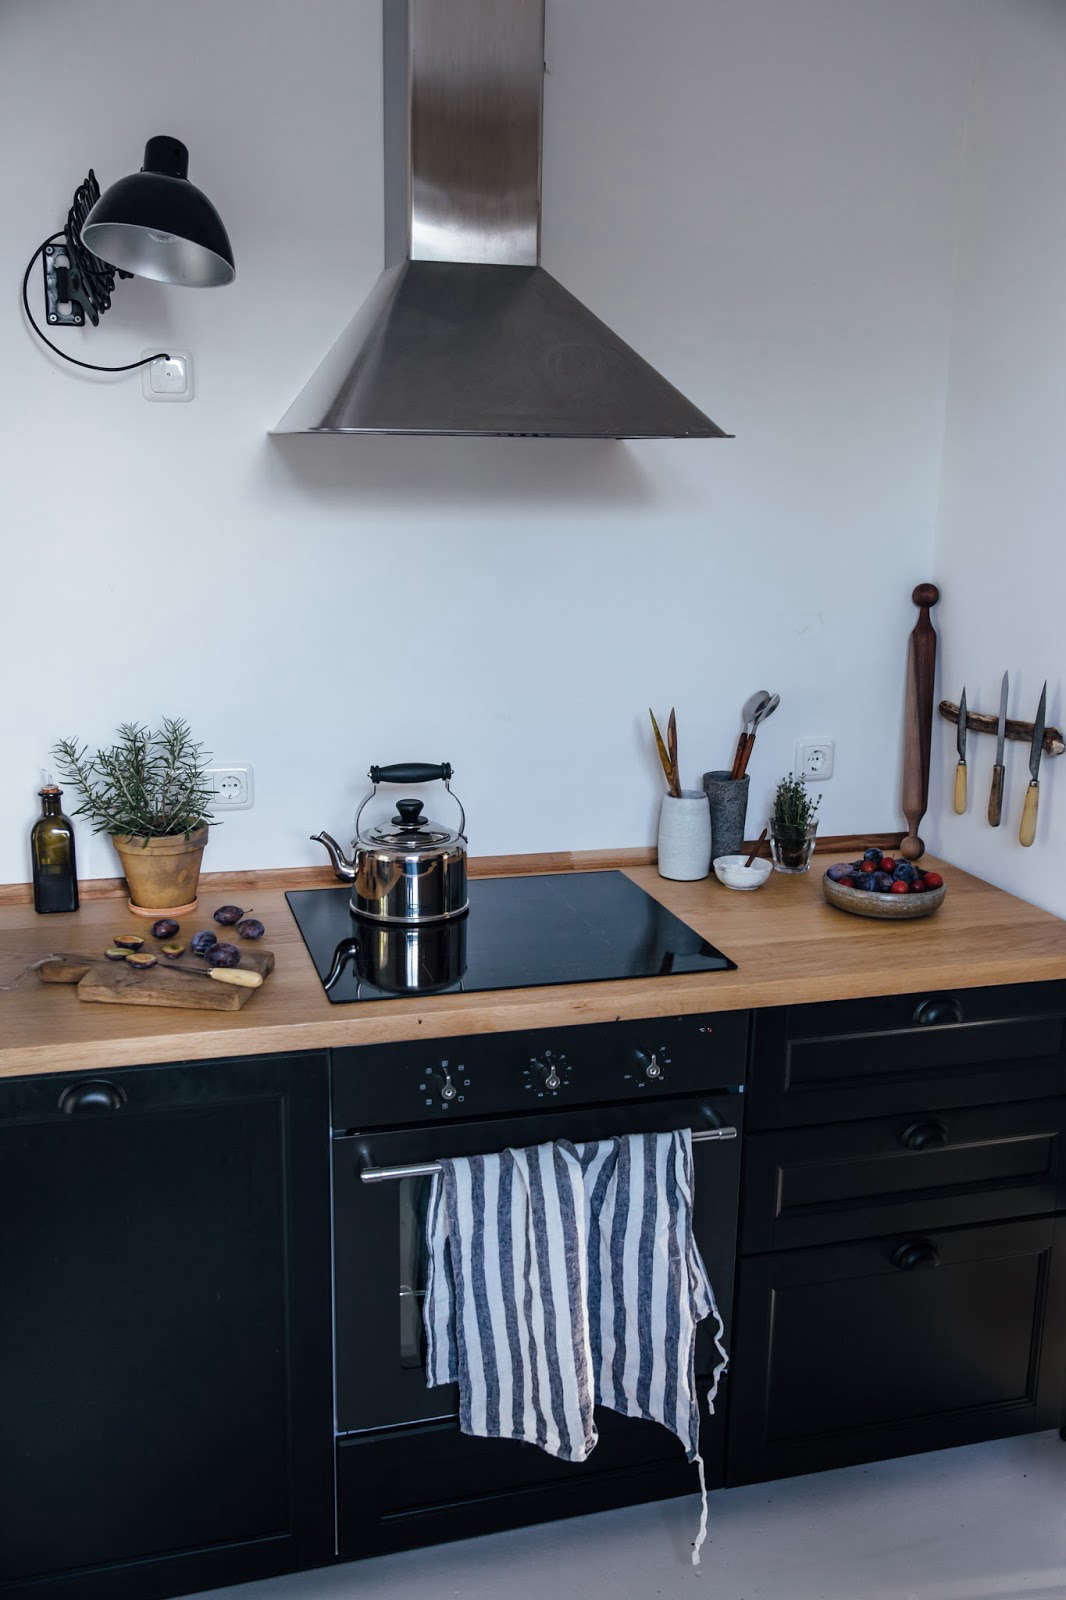 An Ikea range with induction cooktop (see the Nutid). Laura and Nora personalized the design with their own accessories, including a rustic knife rack and scissor lights that they found on eBay (for a similar design, consider the Scissor Arm Pharmacy Wall Light and see more options here).